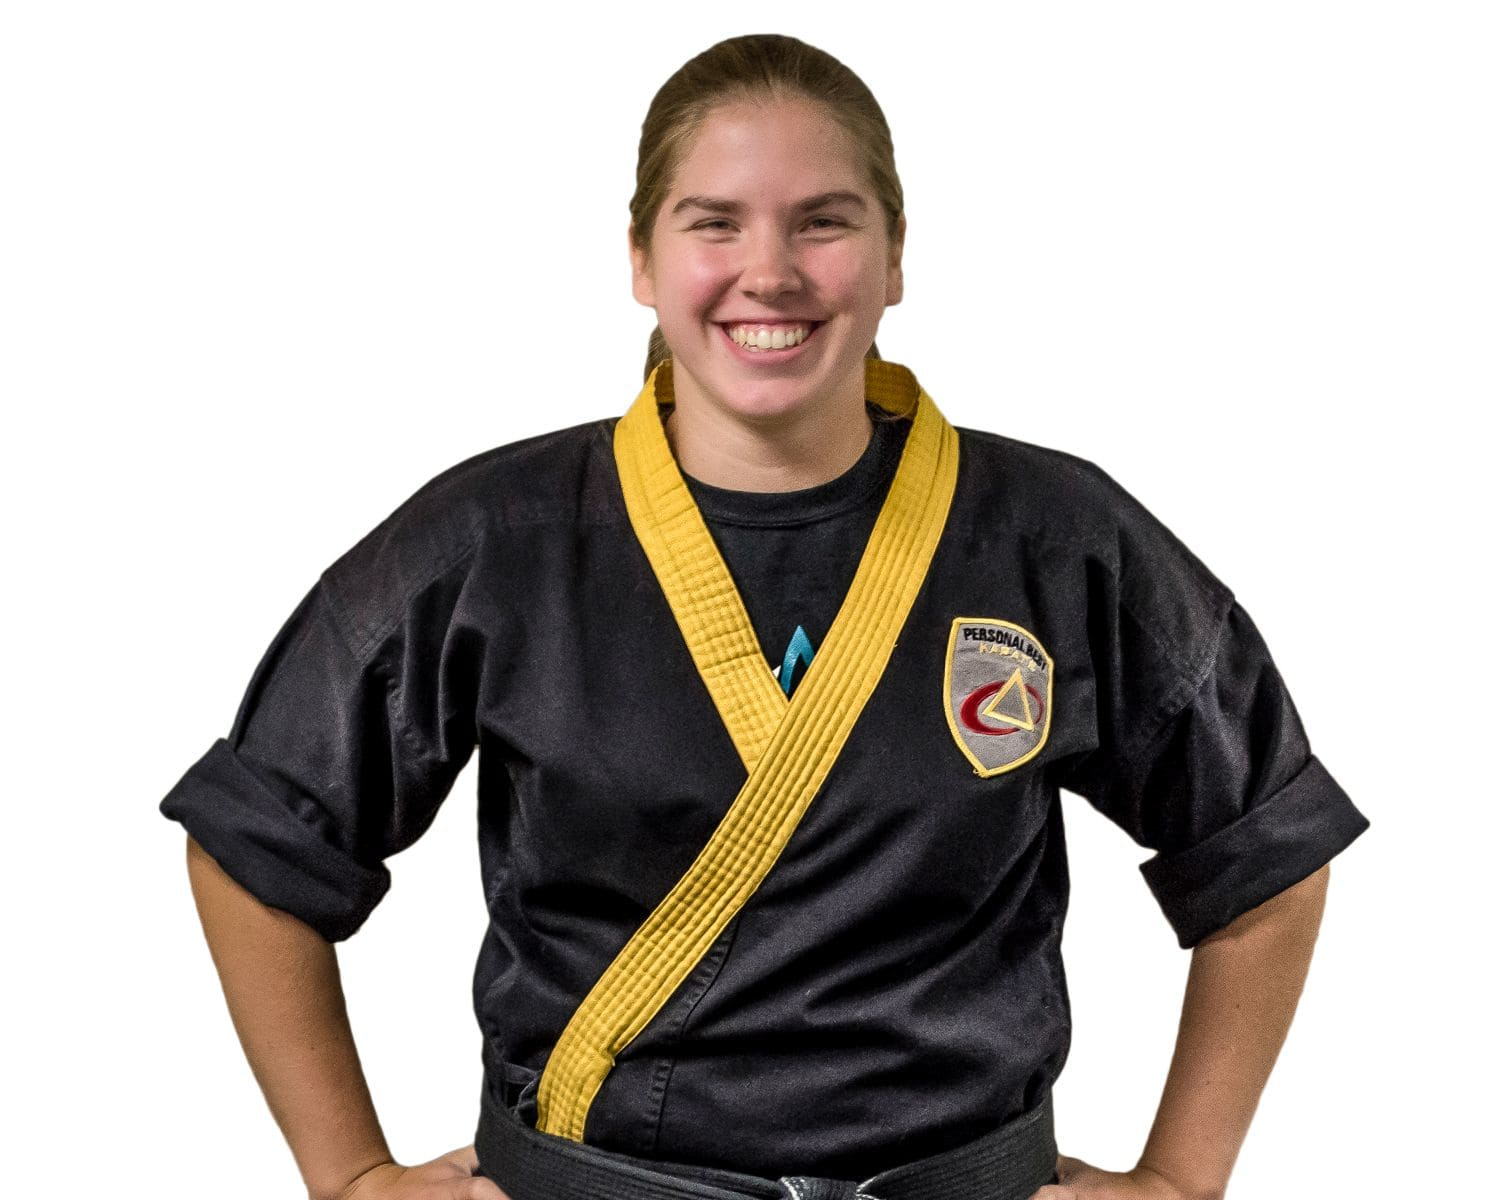 Stephanie McGrath in Norton - Personal Best Karate